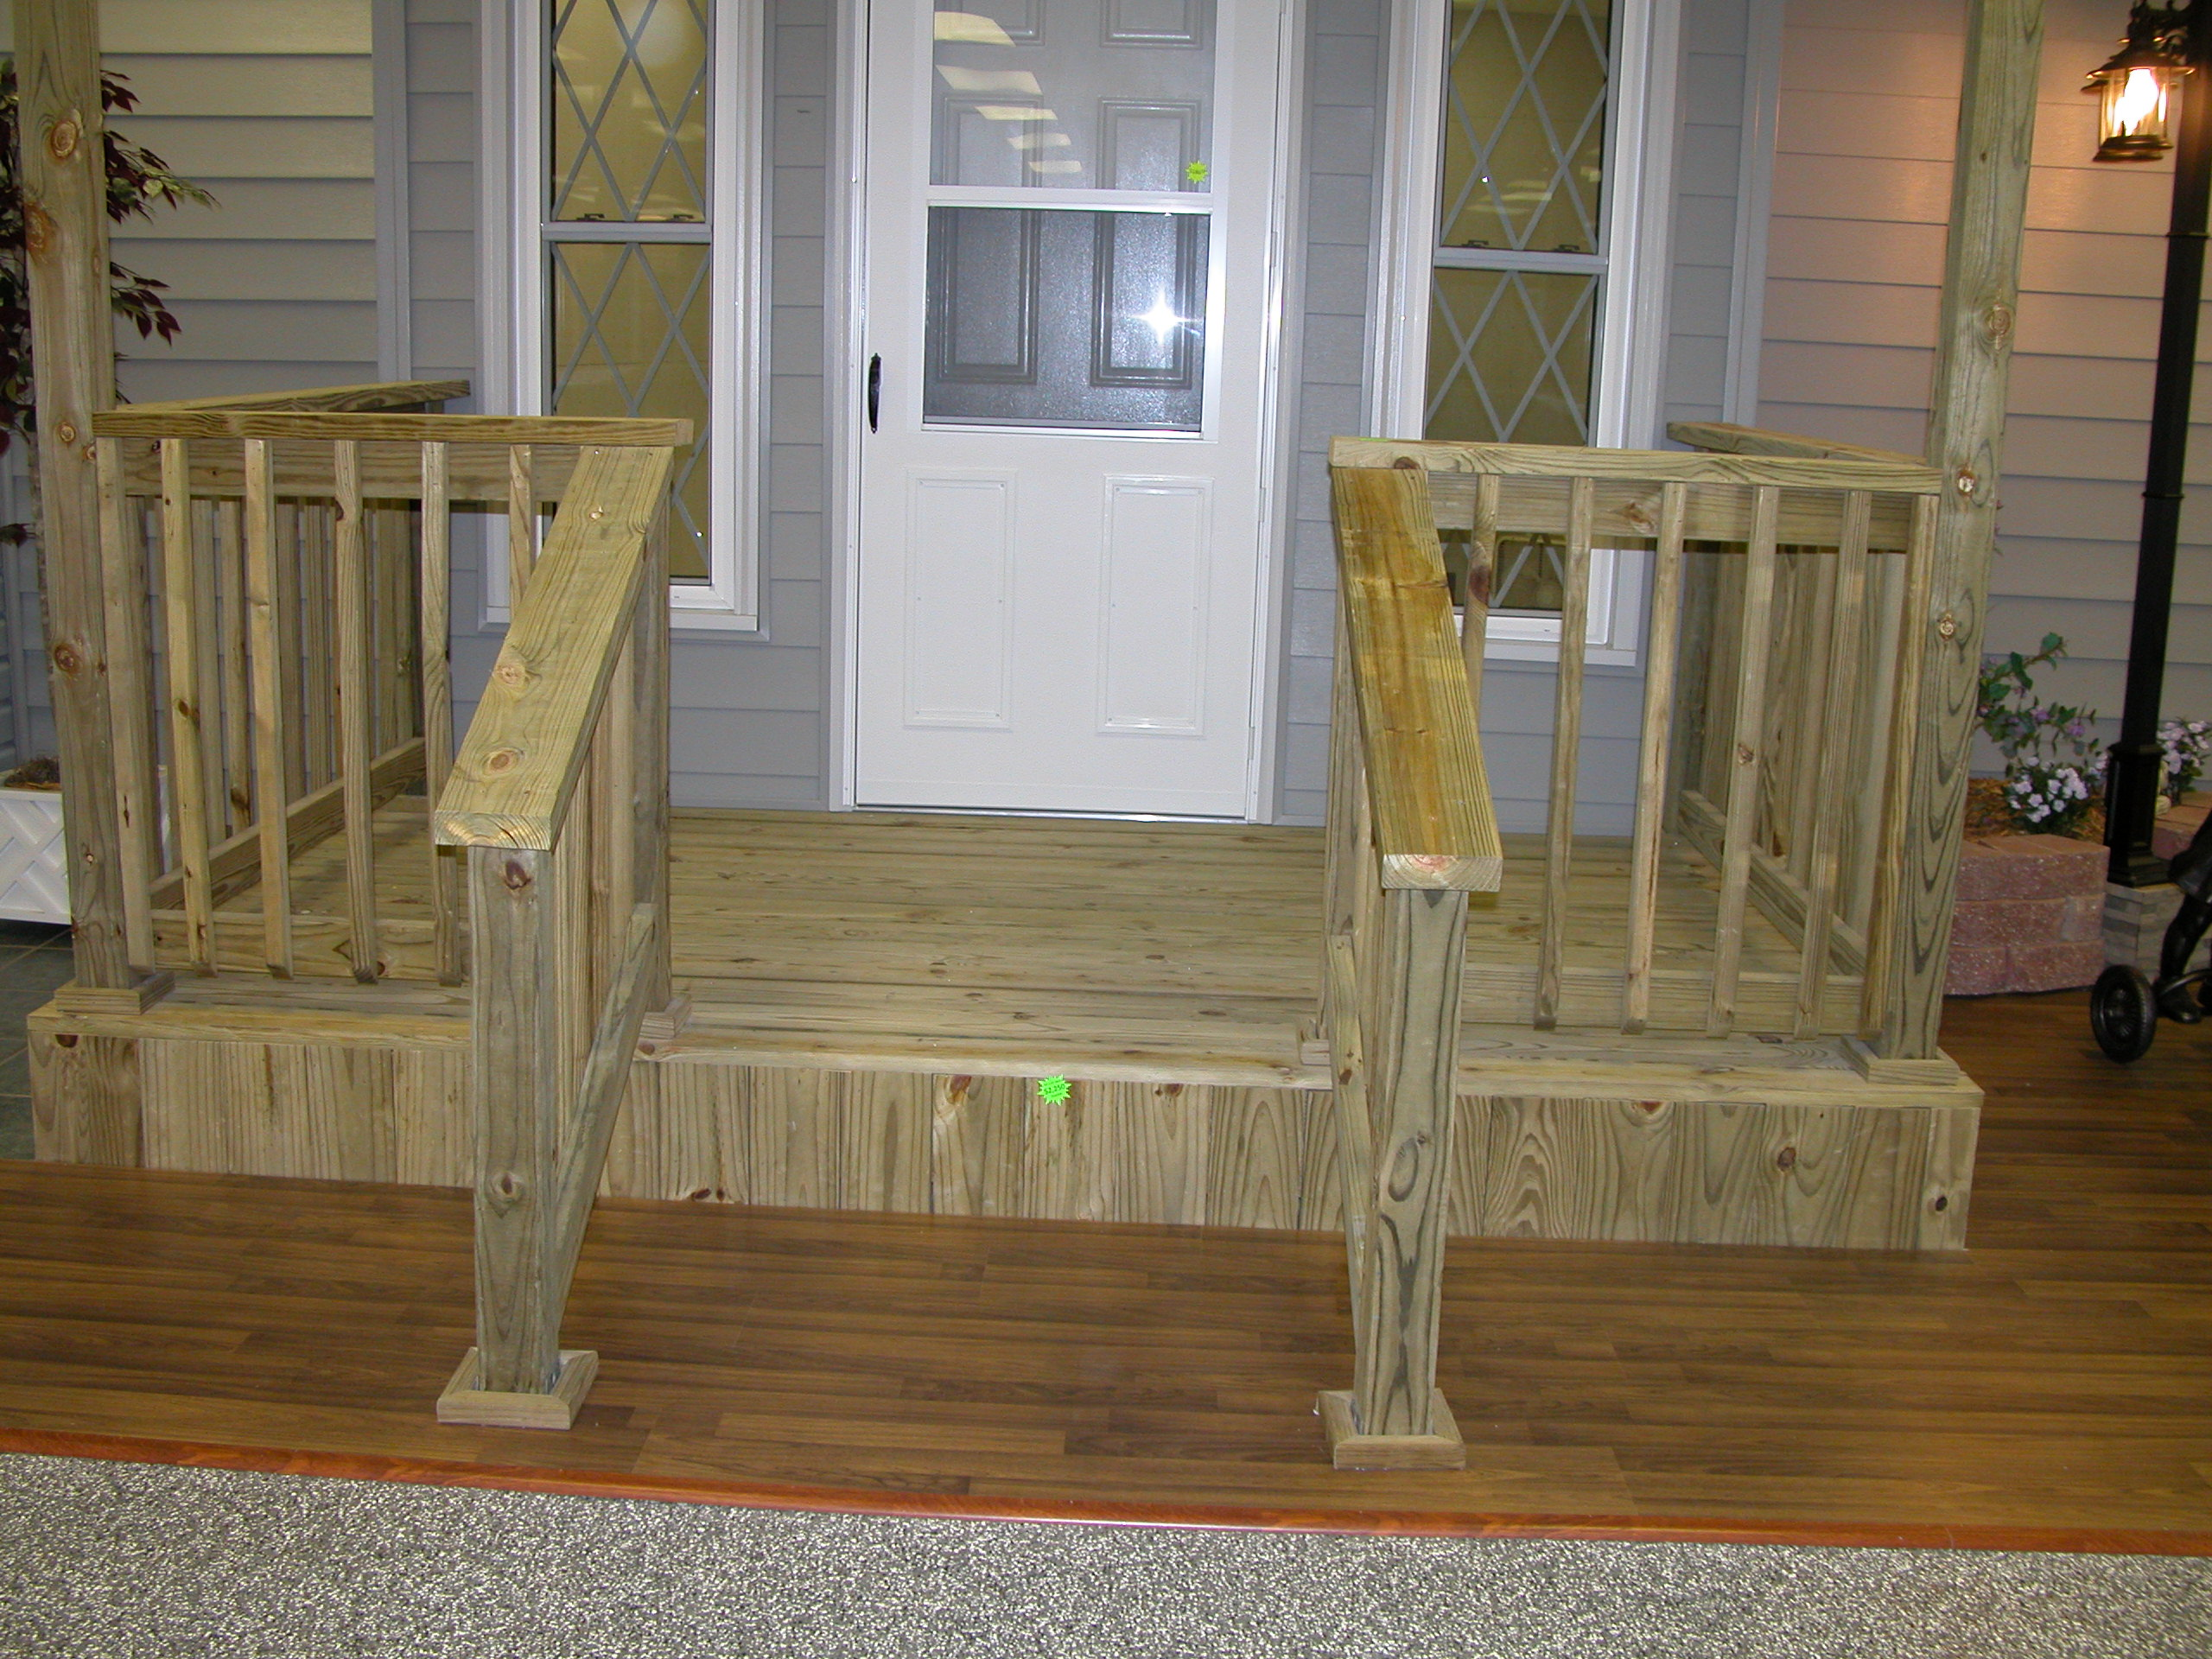 Treated Decking